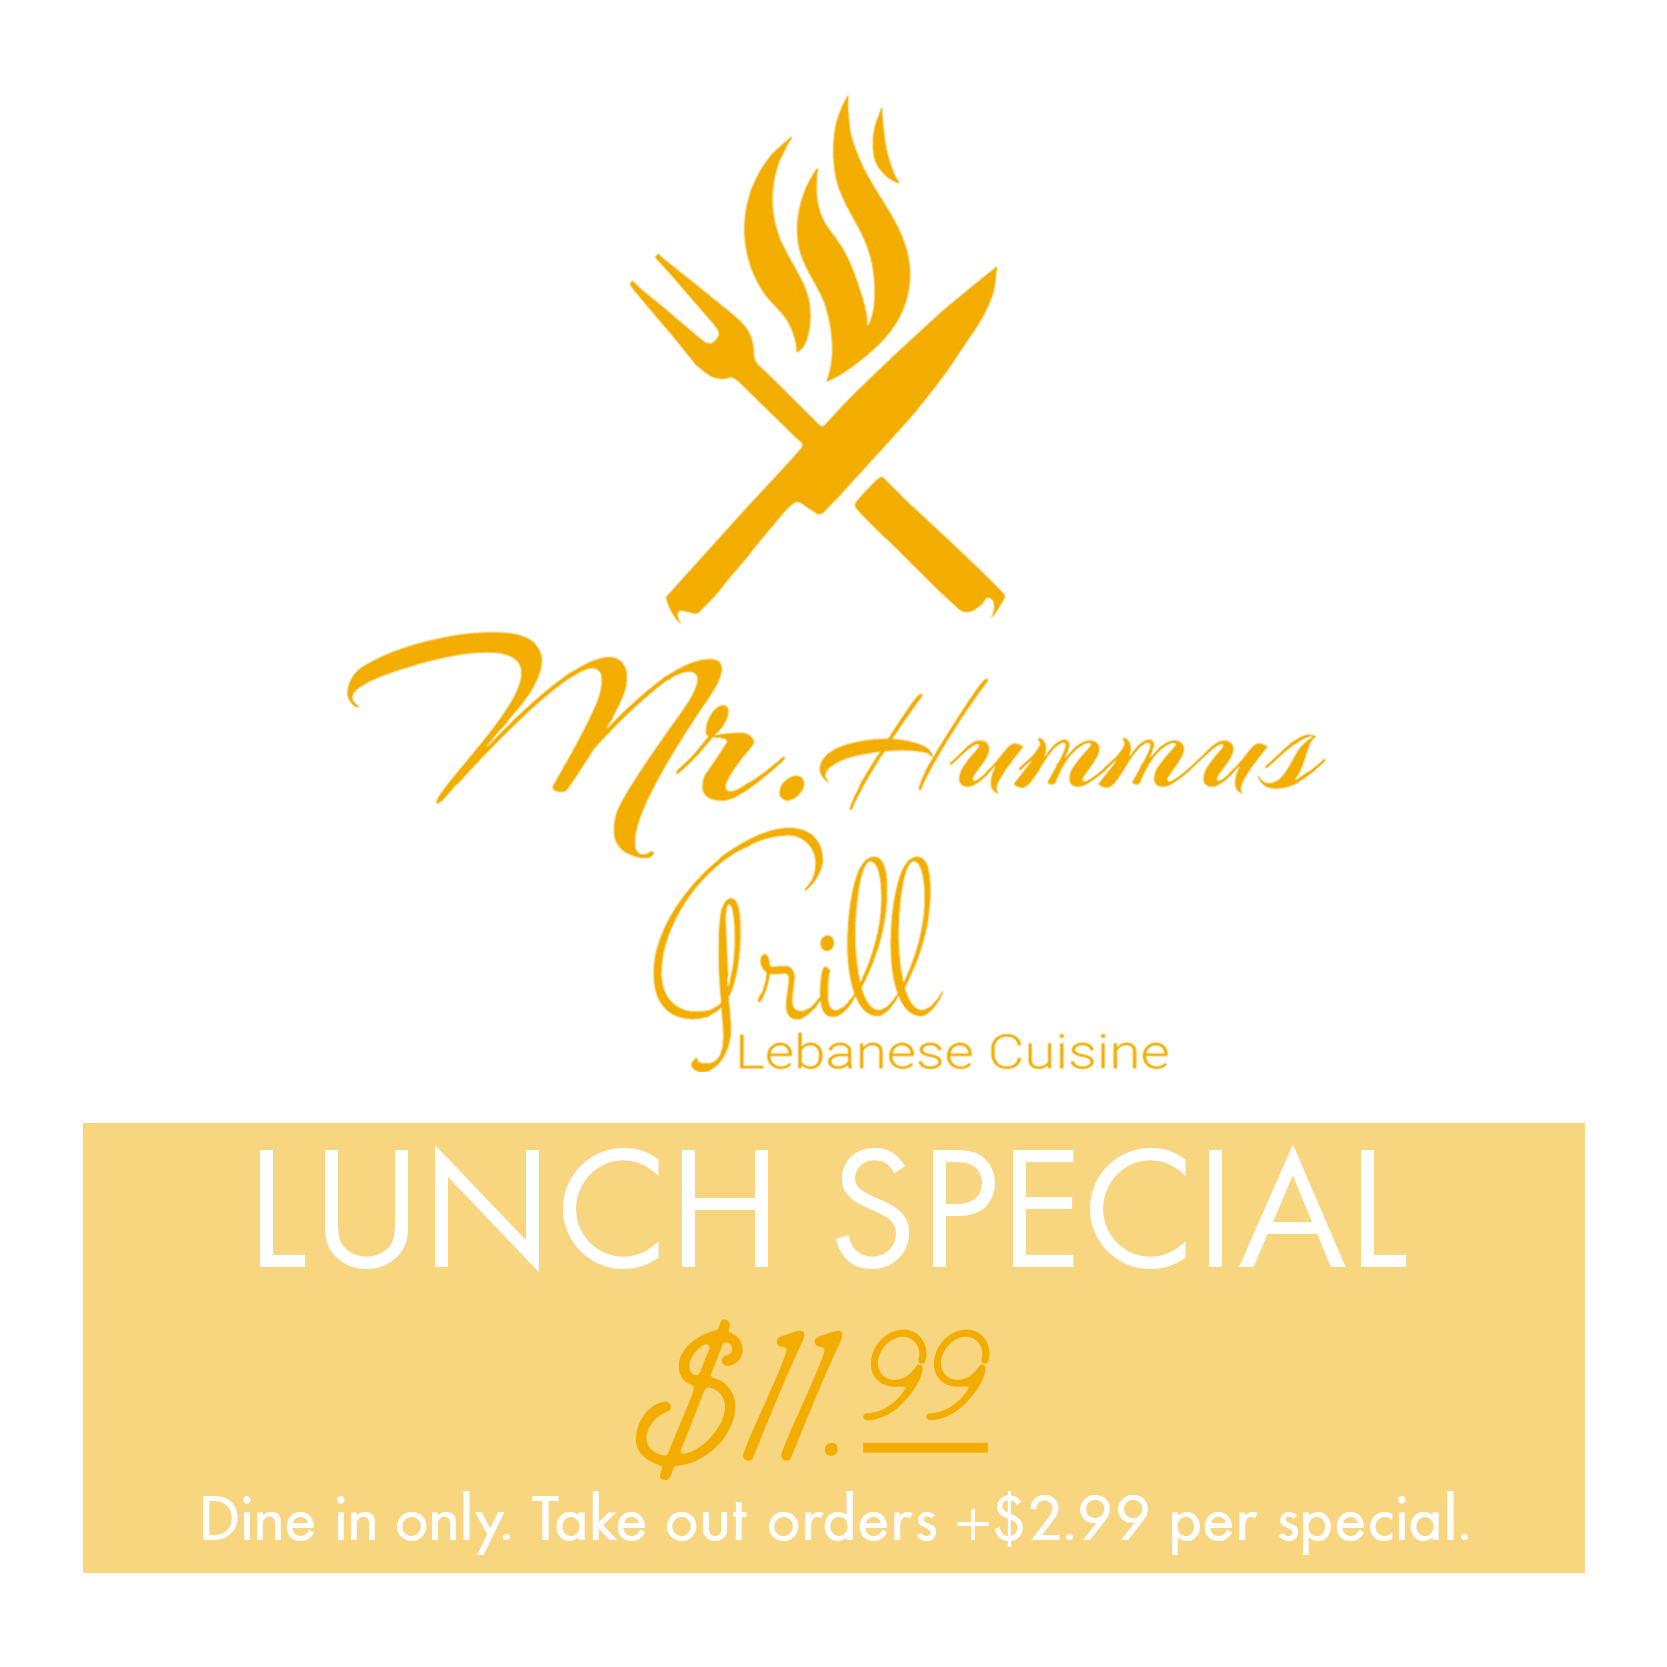 MAIN ENGINE - MHG LUNCH SPECIAL LOGO 400x400 - 10-01-2019.png